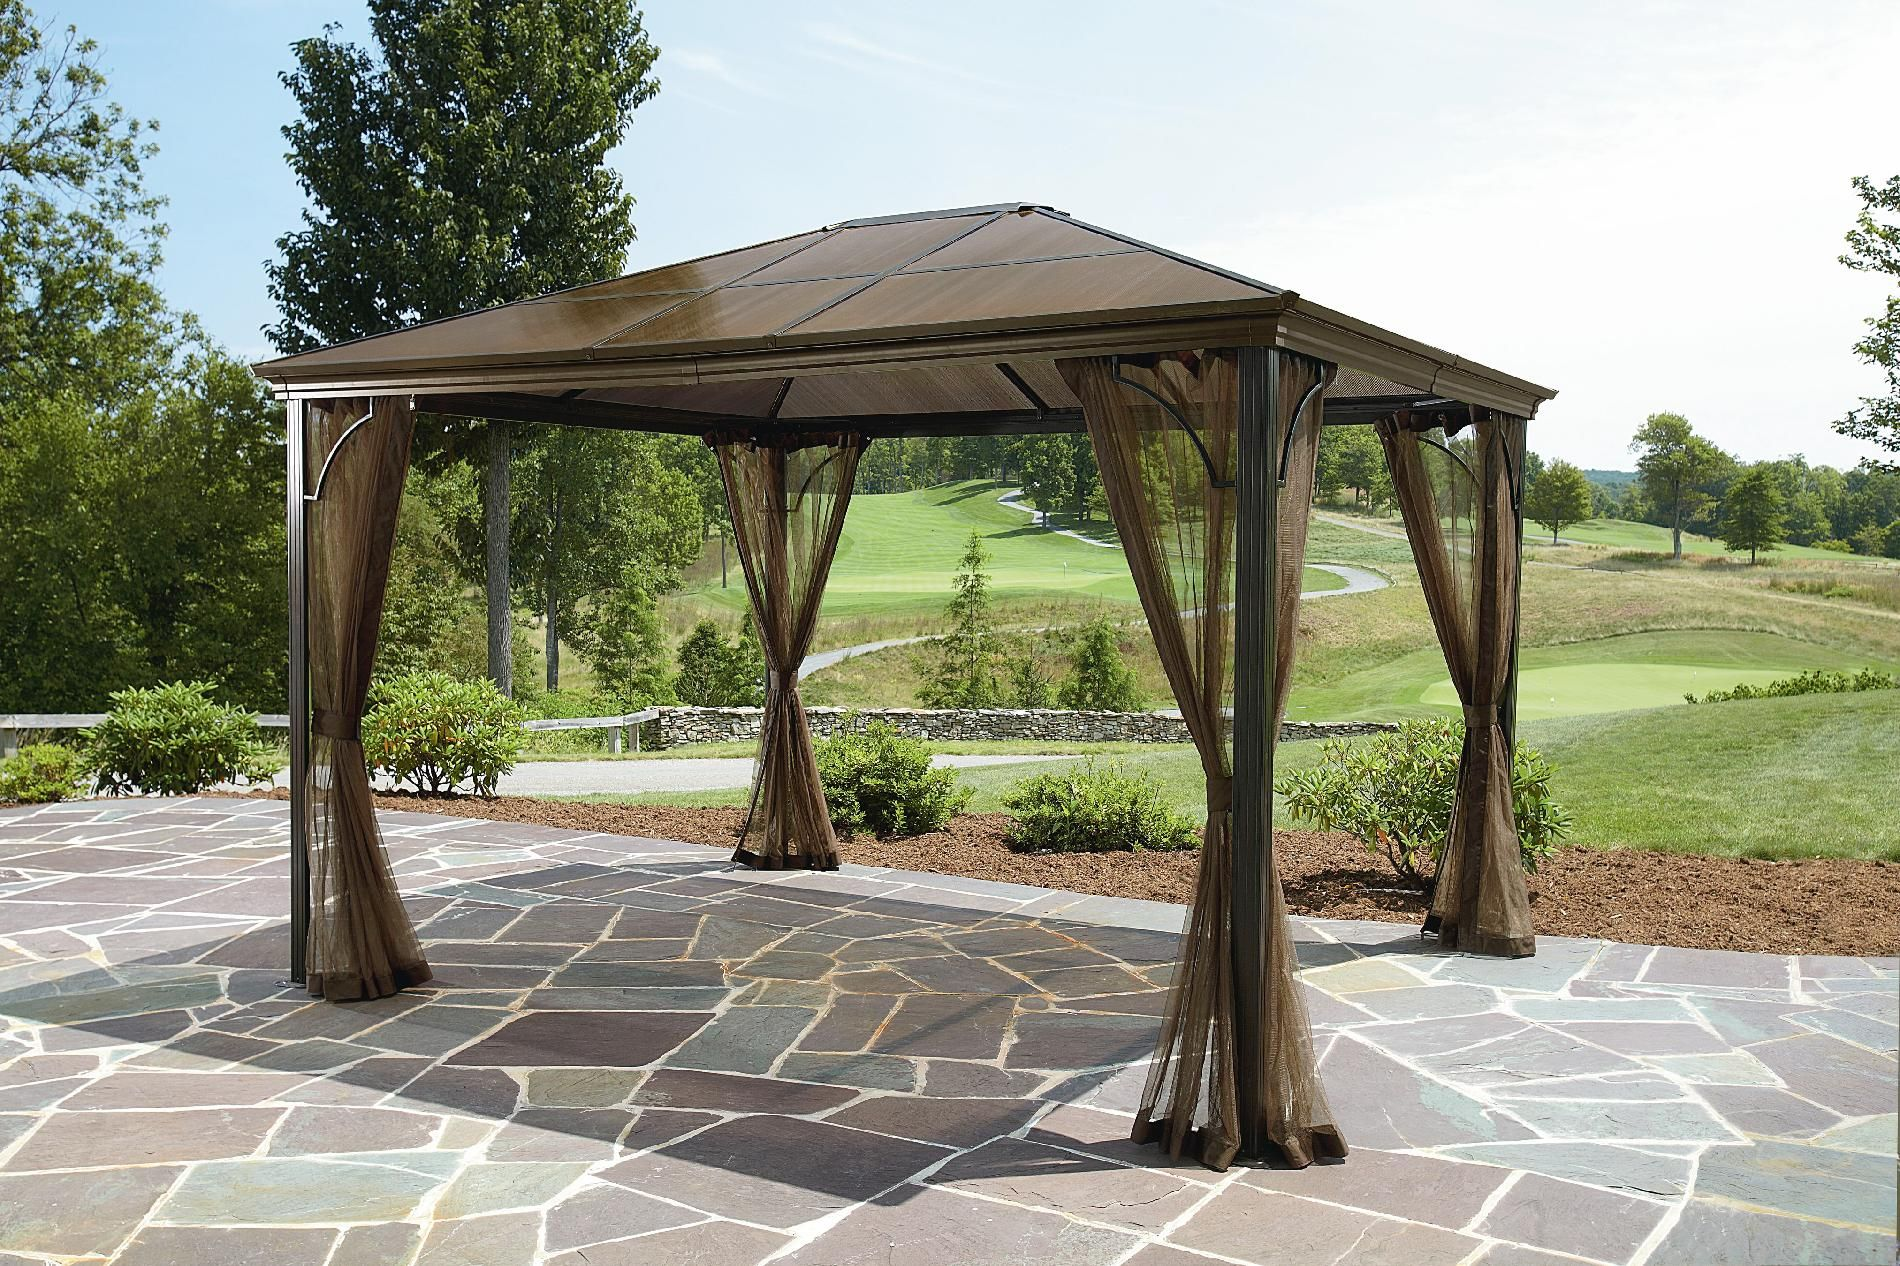 Grand Resort 10x12 Hardtop Gazebo Outdoor Living Gazebos Canopies Pergolas Gazebos Hardtop Gazebo Gazebo Outdoor Heaters